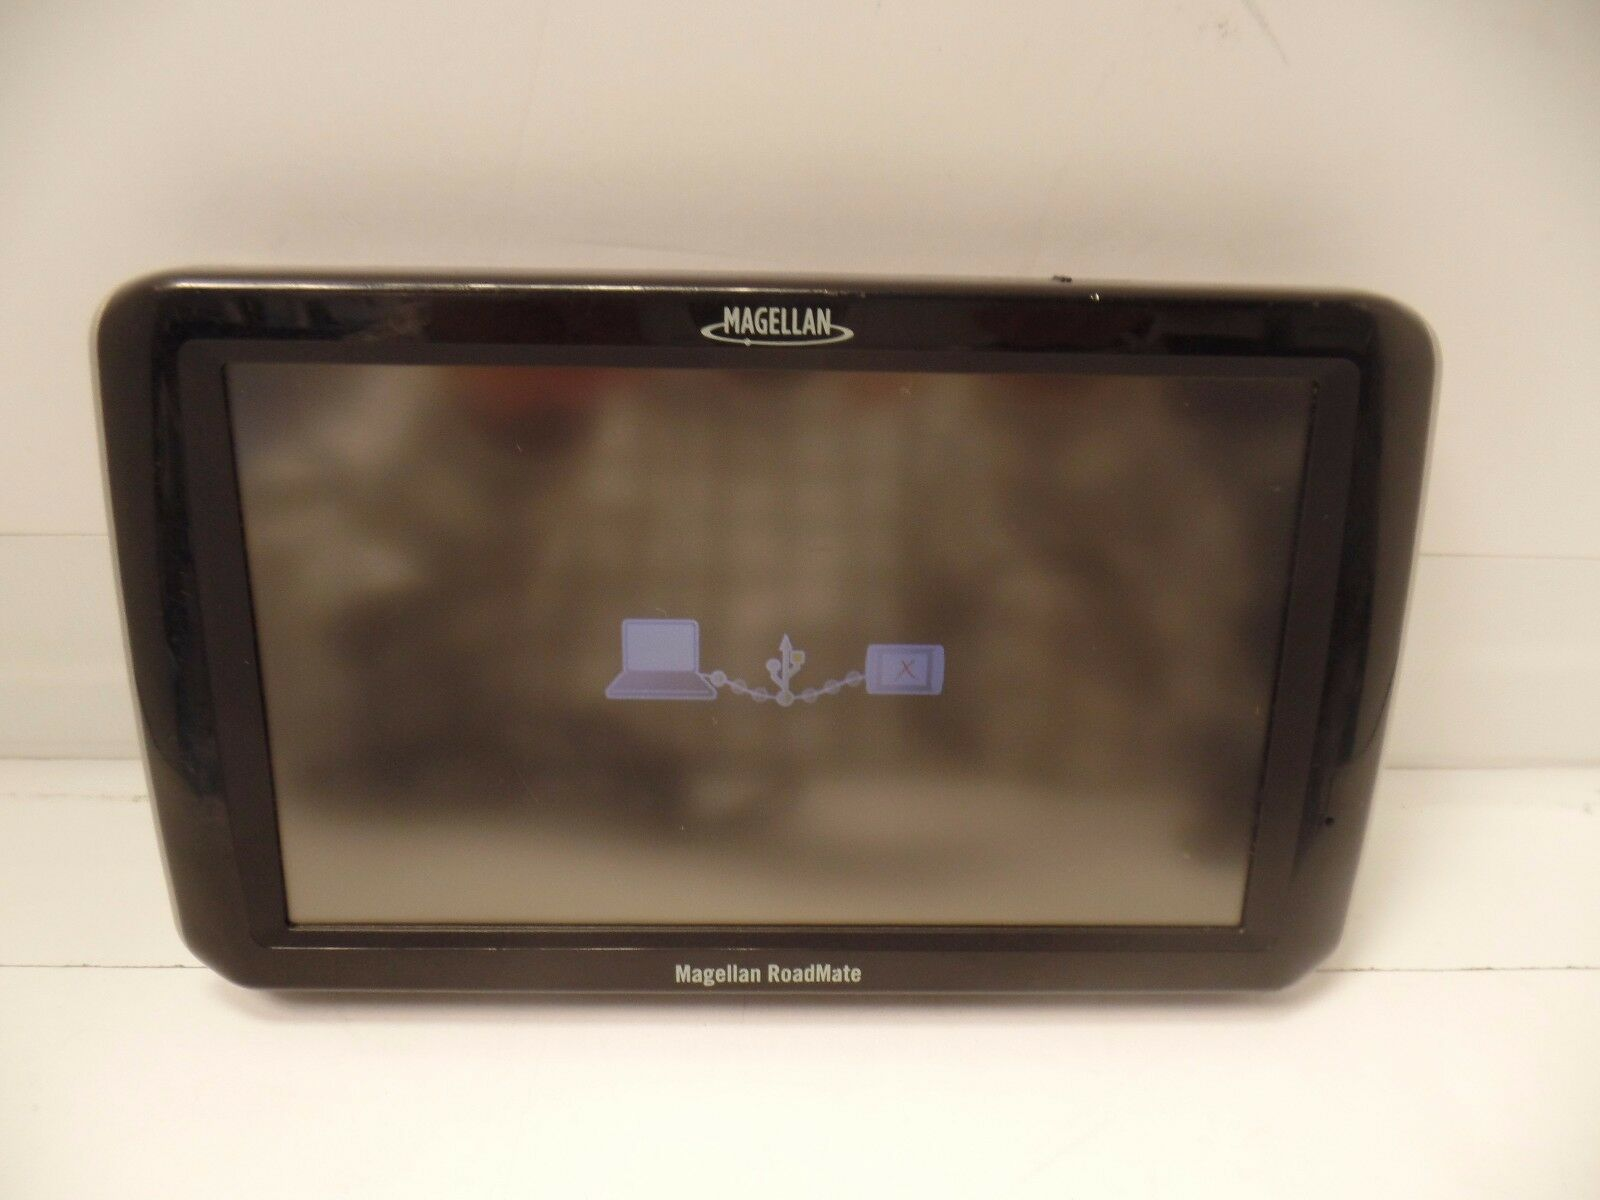 Magellan Roadmate 9250T-LMB 7 inch Automotive GPS AS IS NOT WORKING